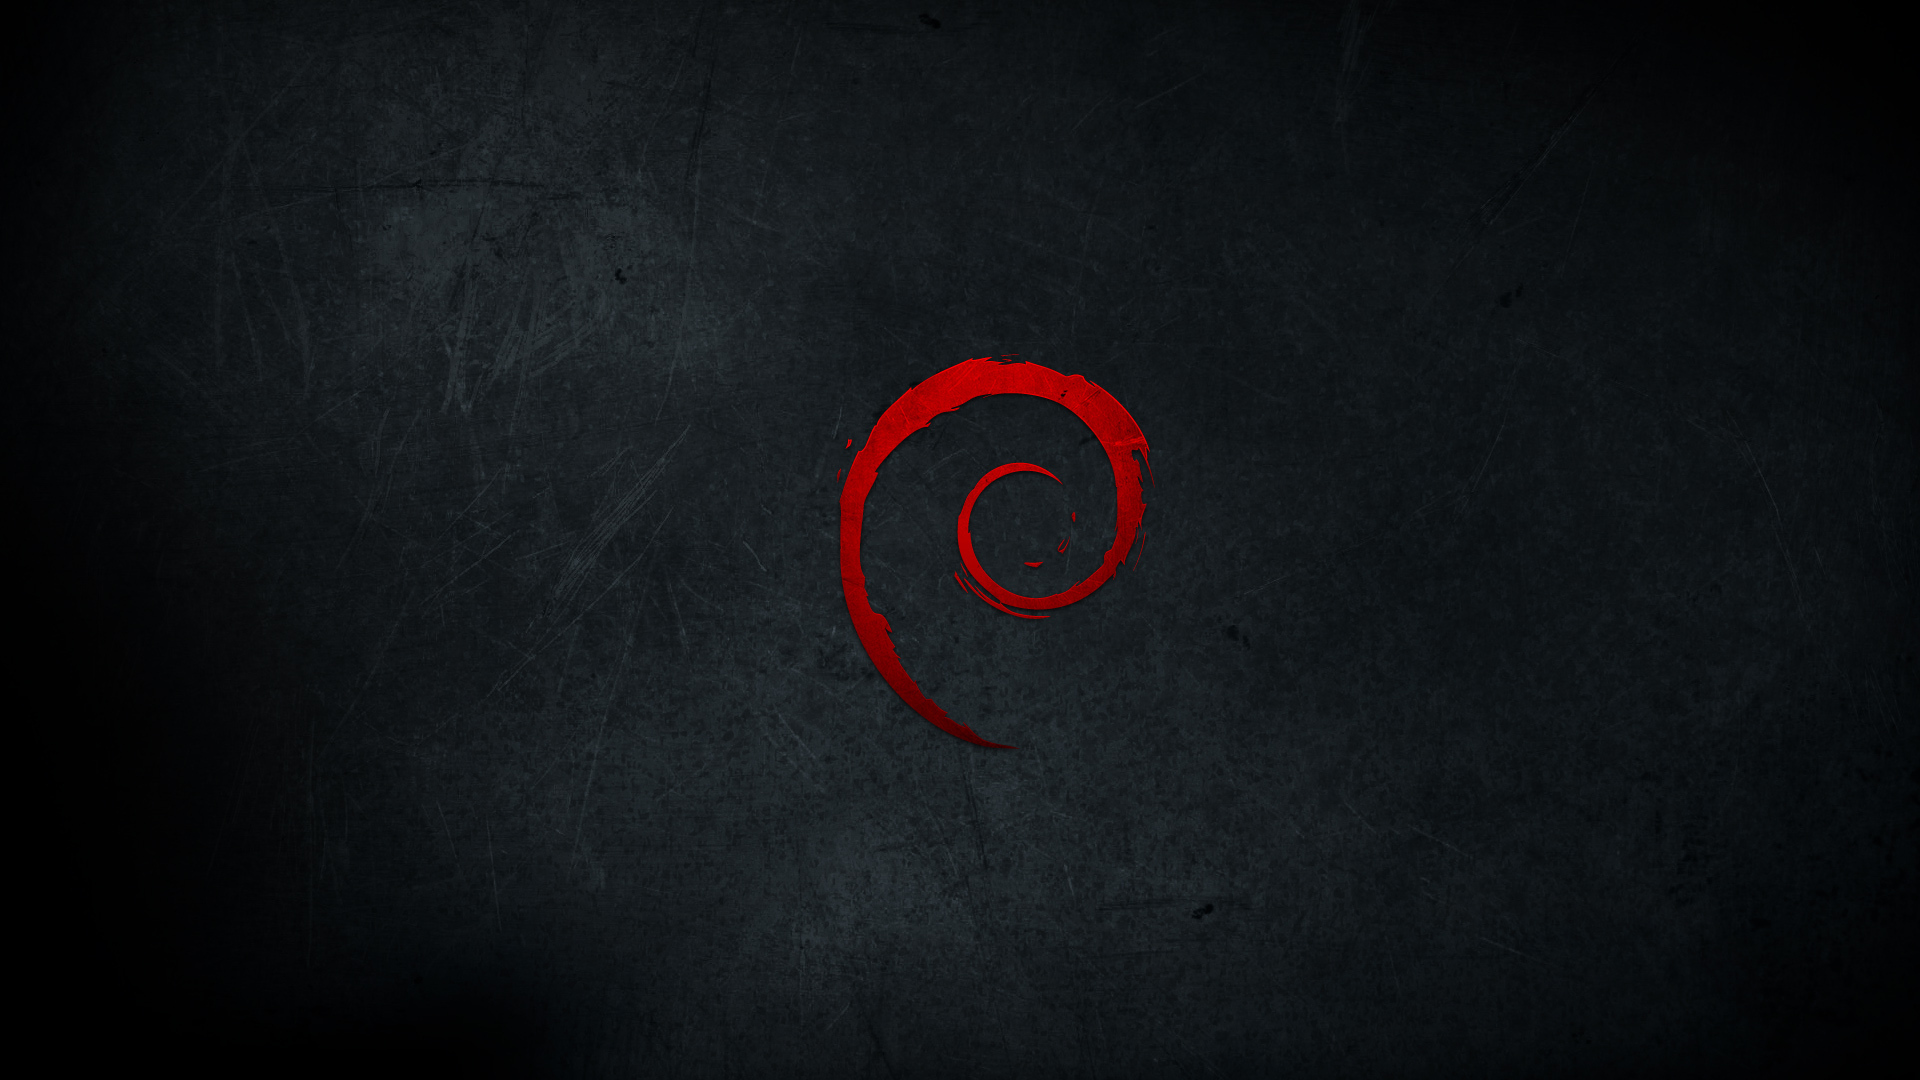 Red And Black Wallpaper >> 1920x1080 Debian Red Logo desktop PC and Mac wallpaper